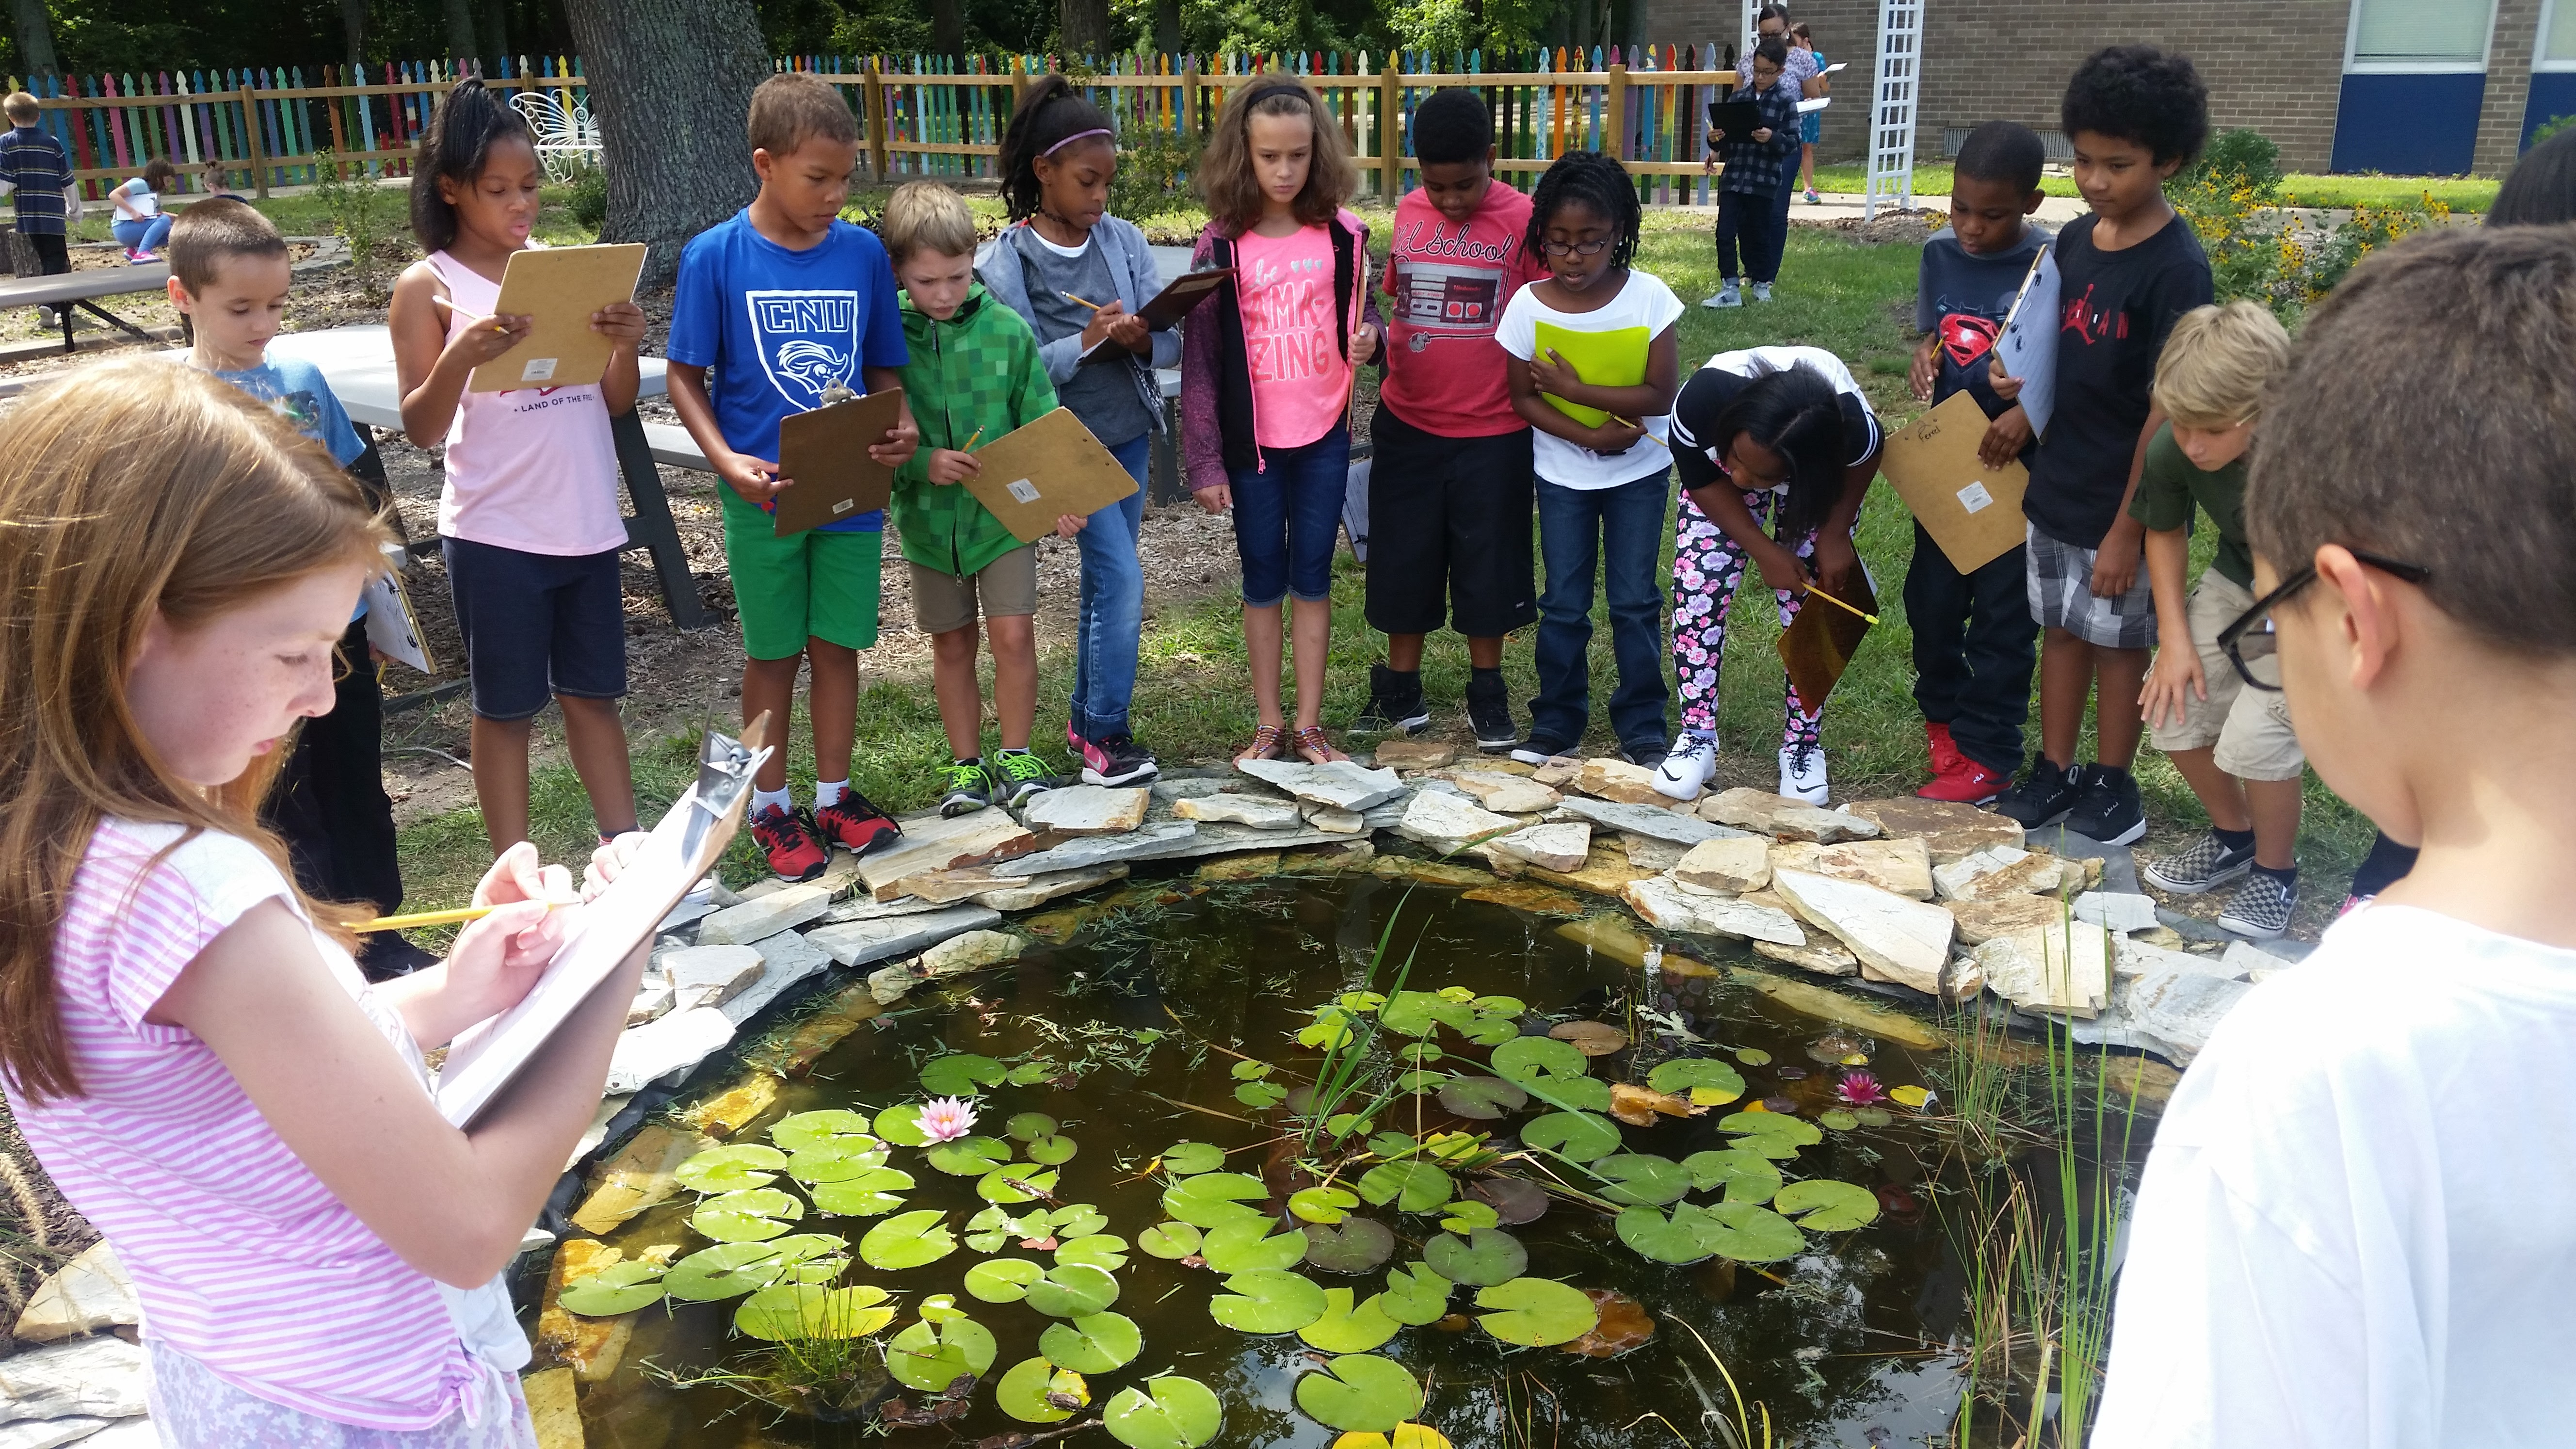 Elementary students making observations around a project made possible by an askHRgreen.org mini-grant.